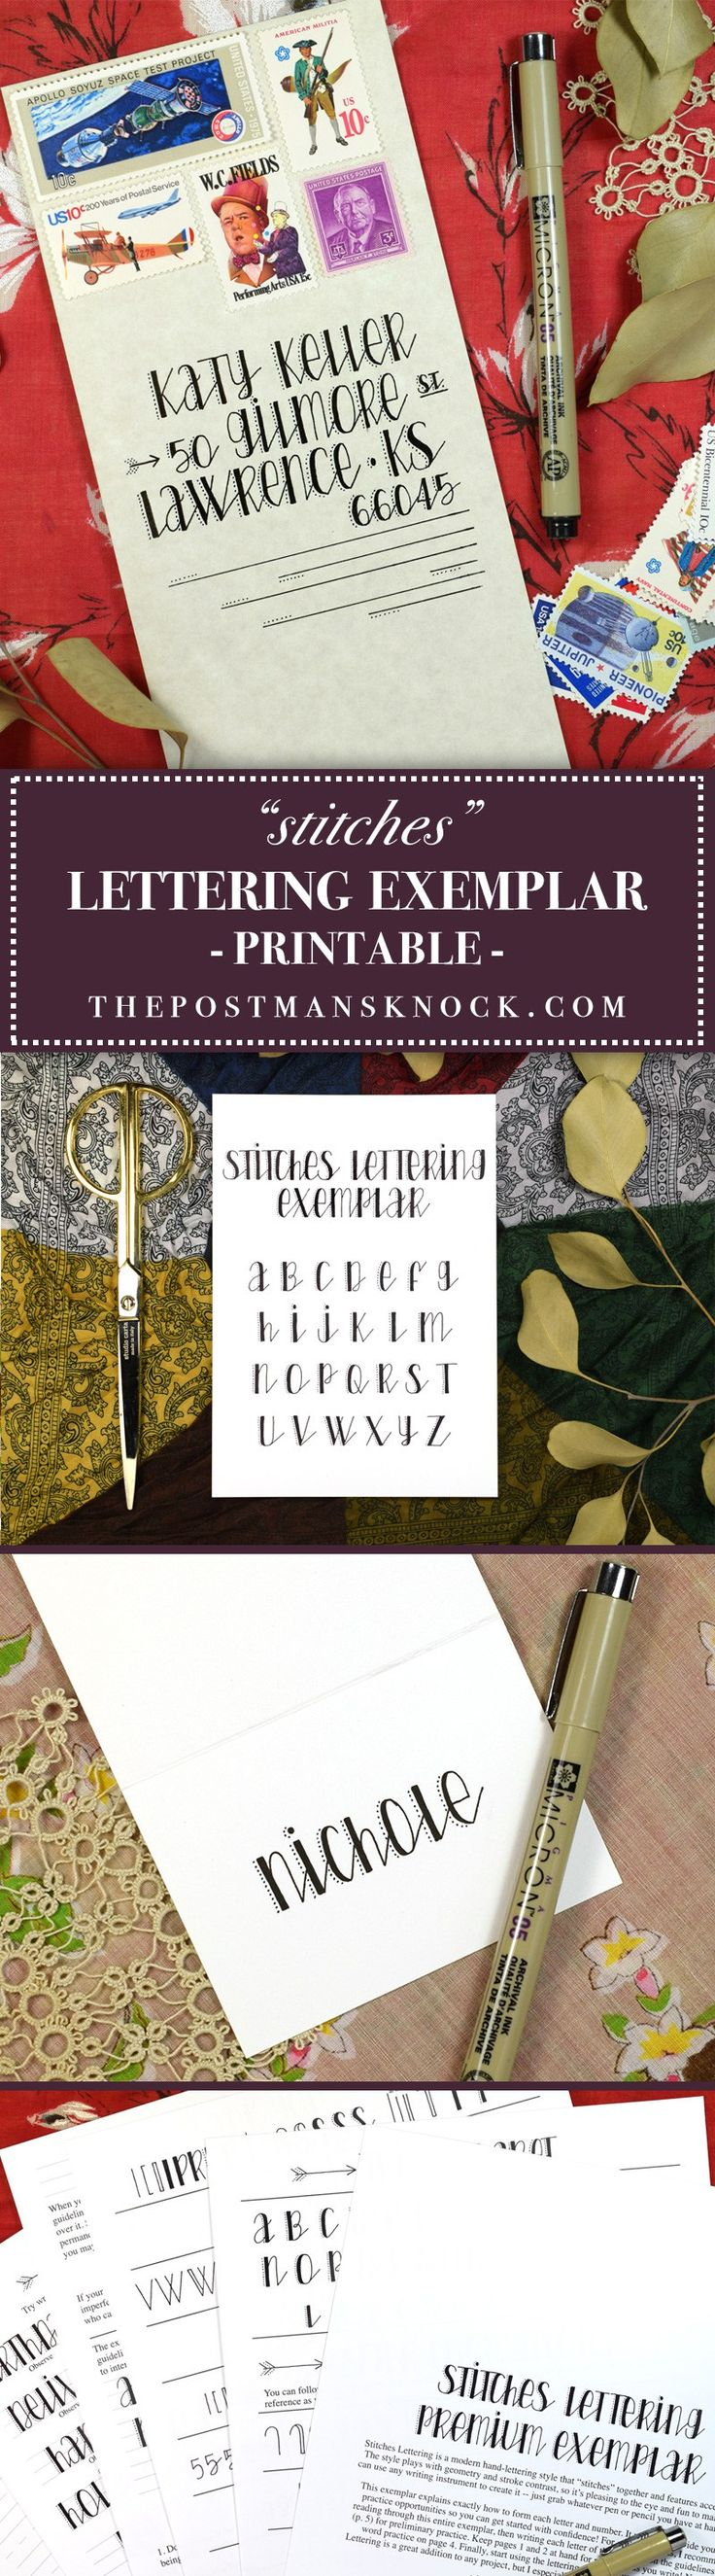 """""""Stitches"""" Printable Hand-Lettering Exemplars 